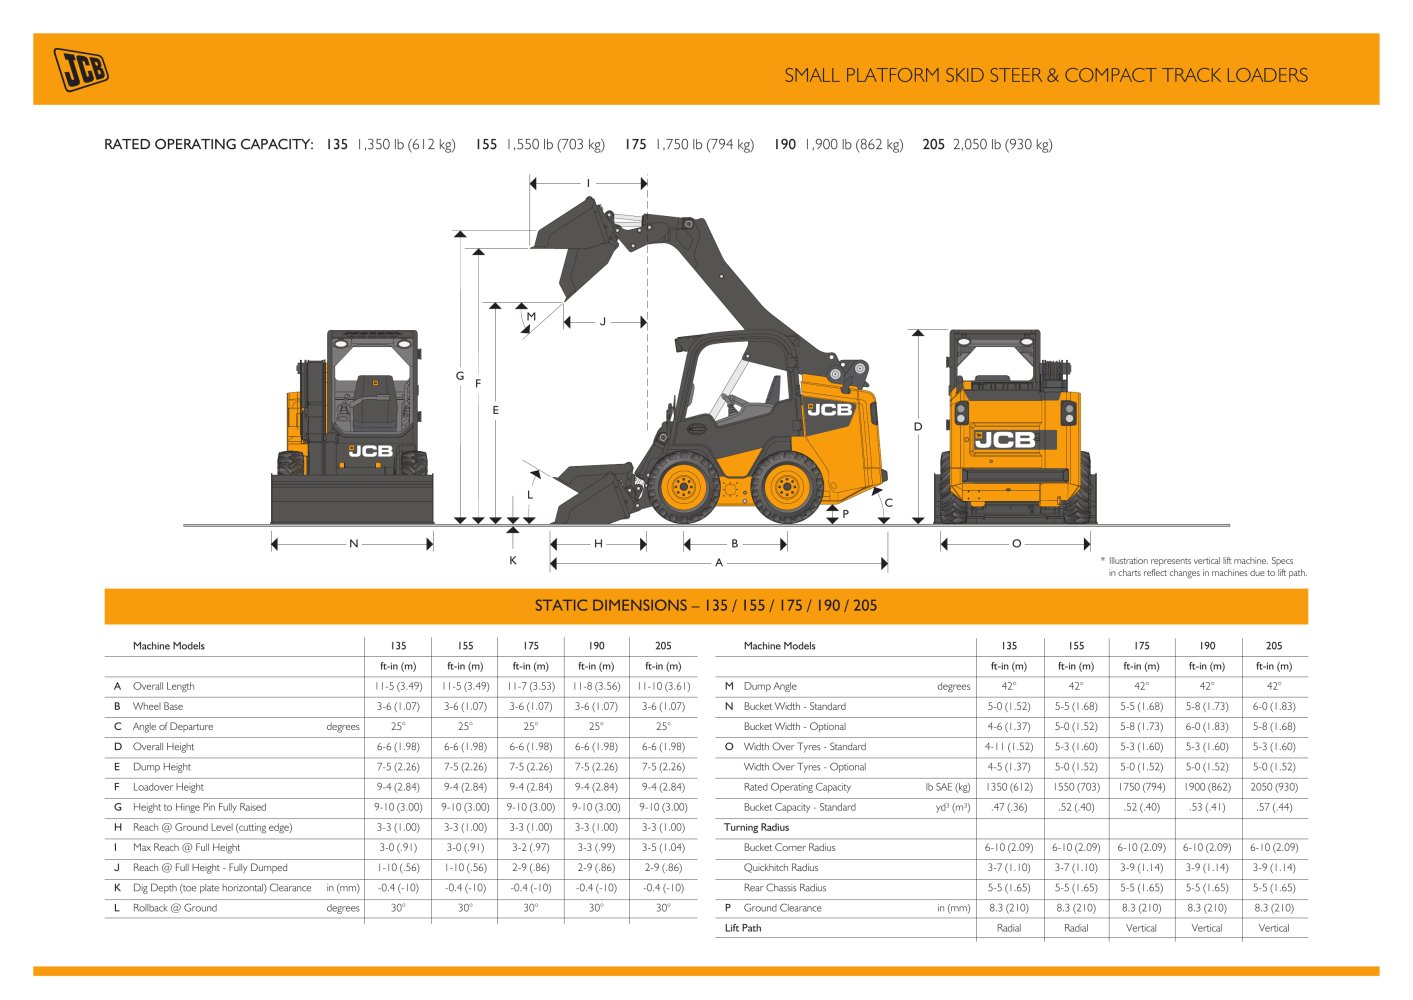 SMALL PLATFORM SKID STEER & COMPACT TRACK LOADERS - 1 / 8 Pages